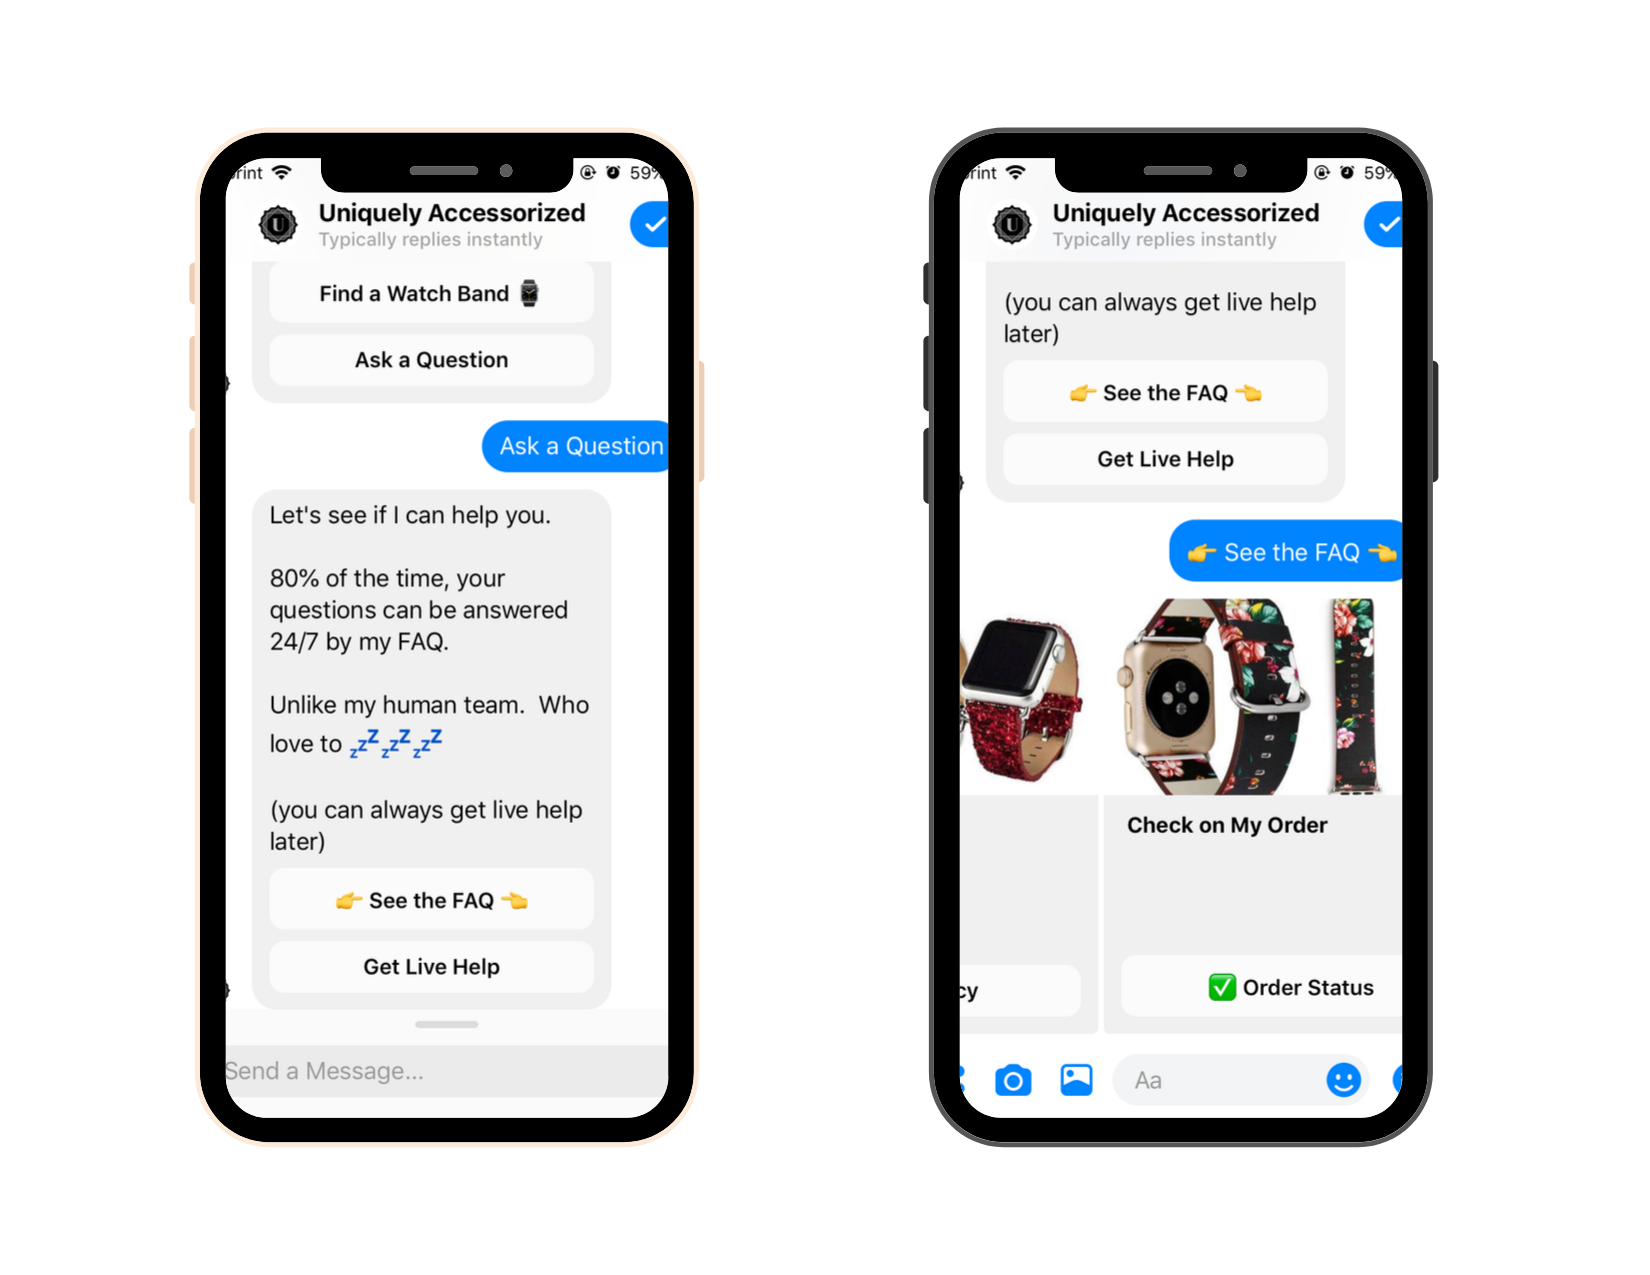 Chatbot Examples: Uniquely Accessorized 2